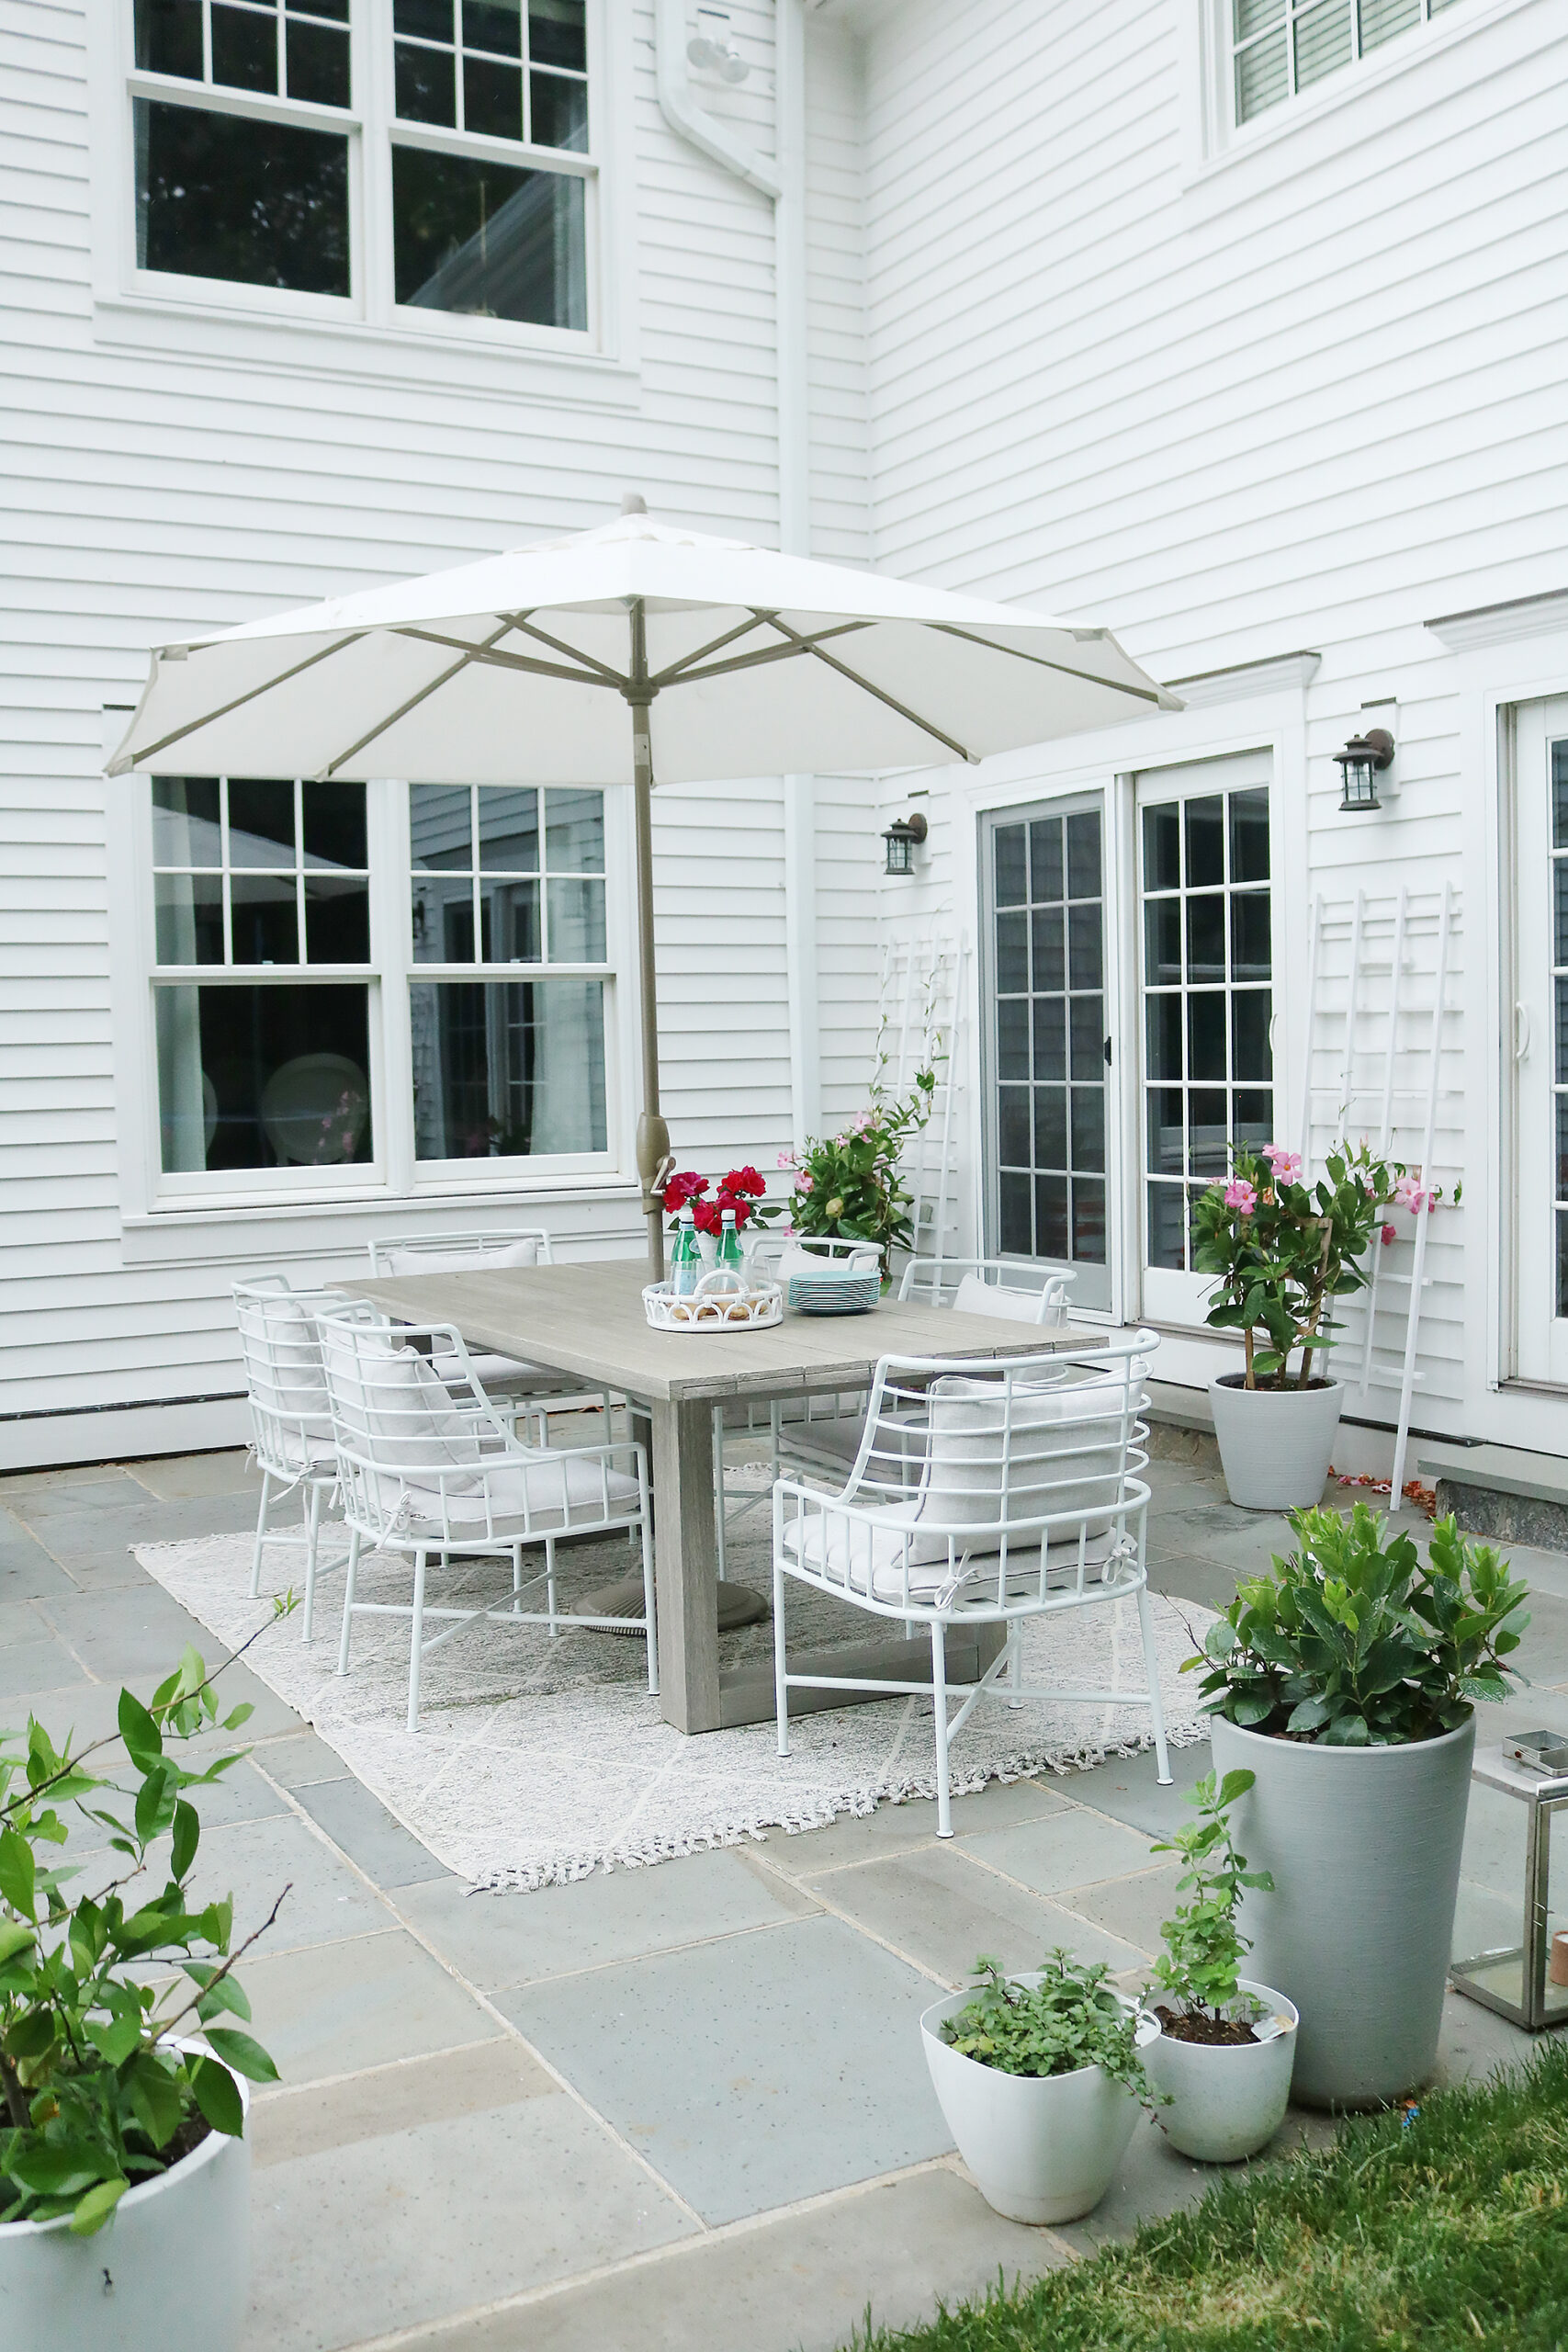 Backyard charm with outdoor dining table modern with white chairs  || Darling Darleen Top CT Lifestyle Blogger home exterior | outdoor charm | curb appeal ideas | home exterior ideas | white house with gray shutters | porch swing | shutter | new england charm | blue front door | #darlingdarleen